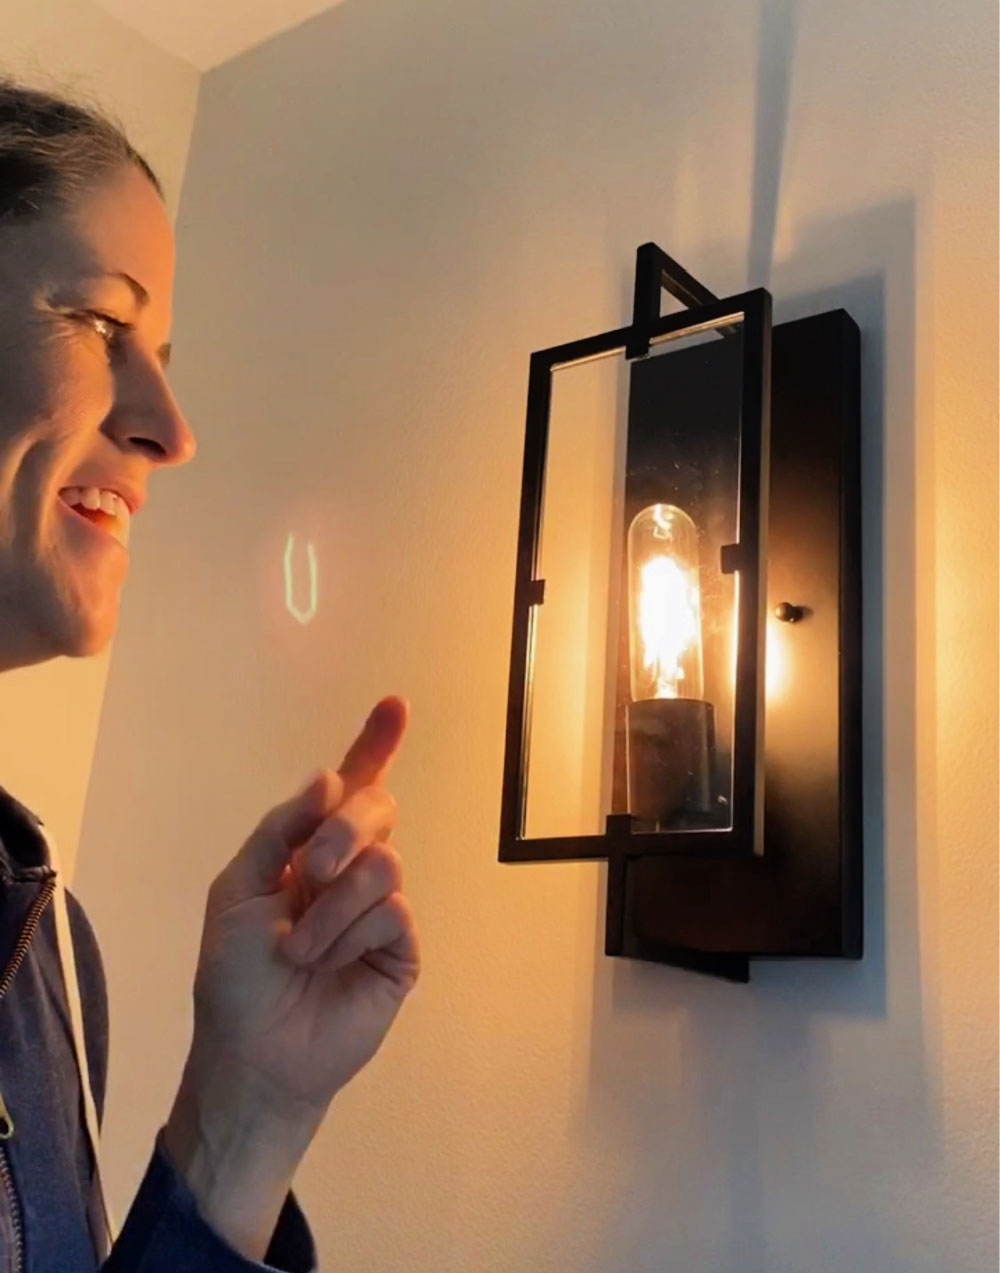 Edison light bulb in wall sconce